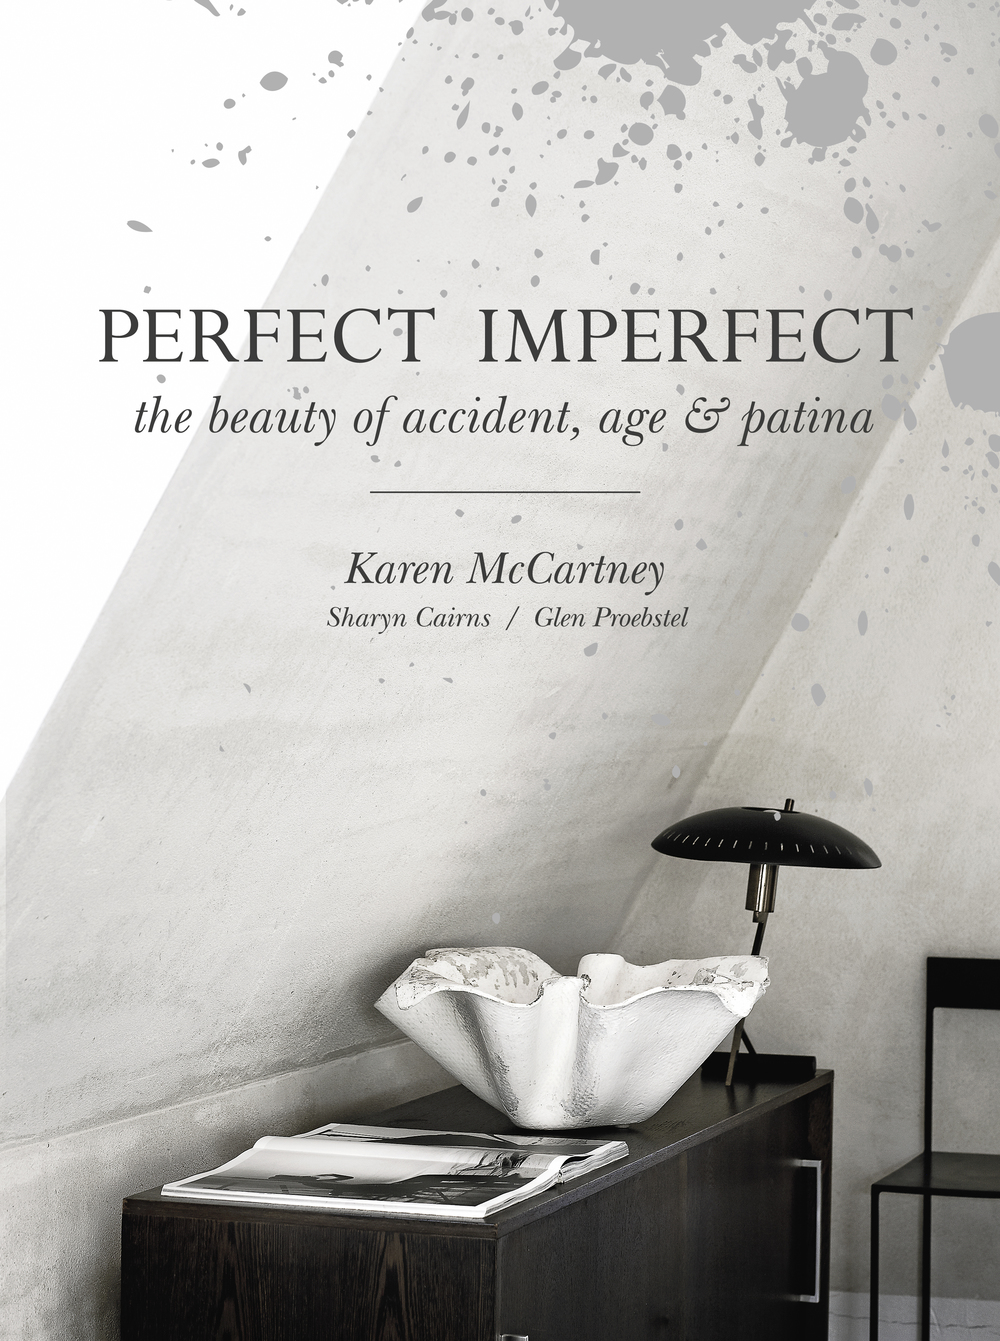 Perfect Imperfect_hiresjpg.jpg